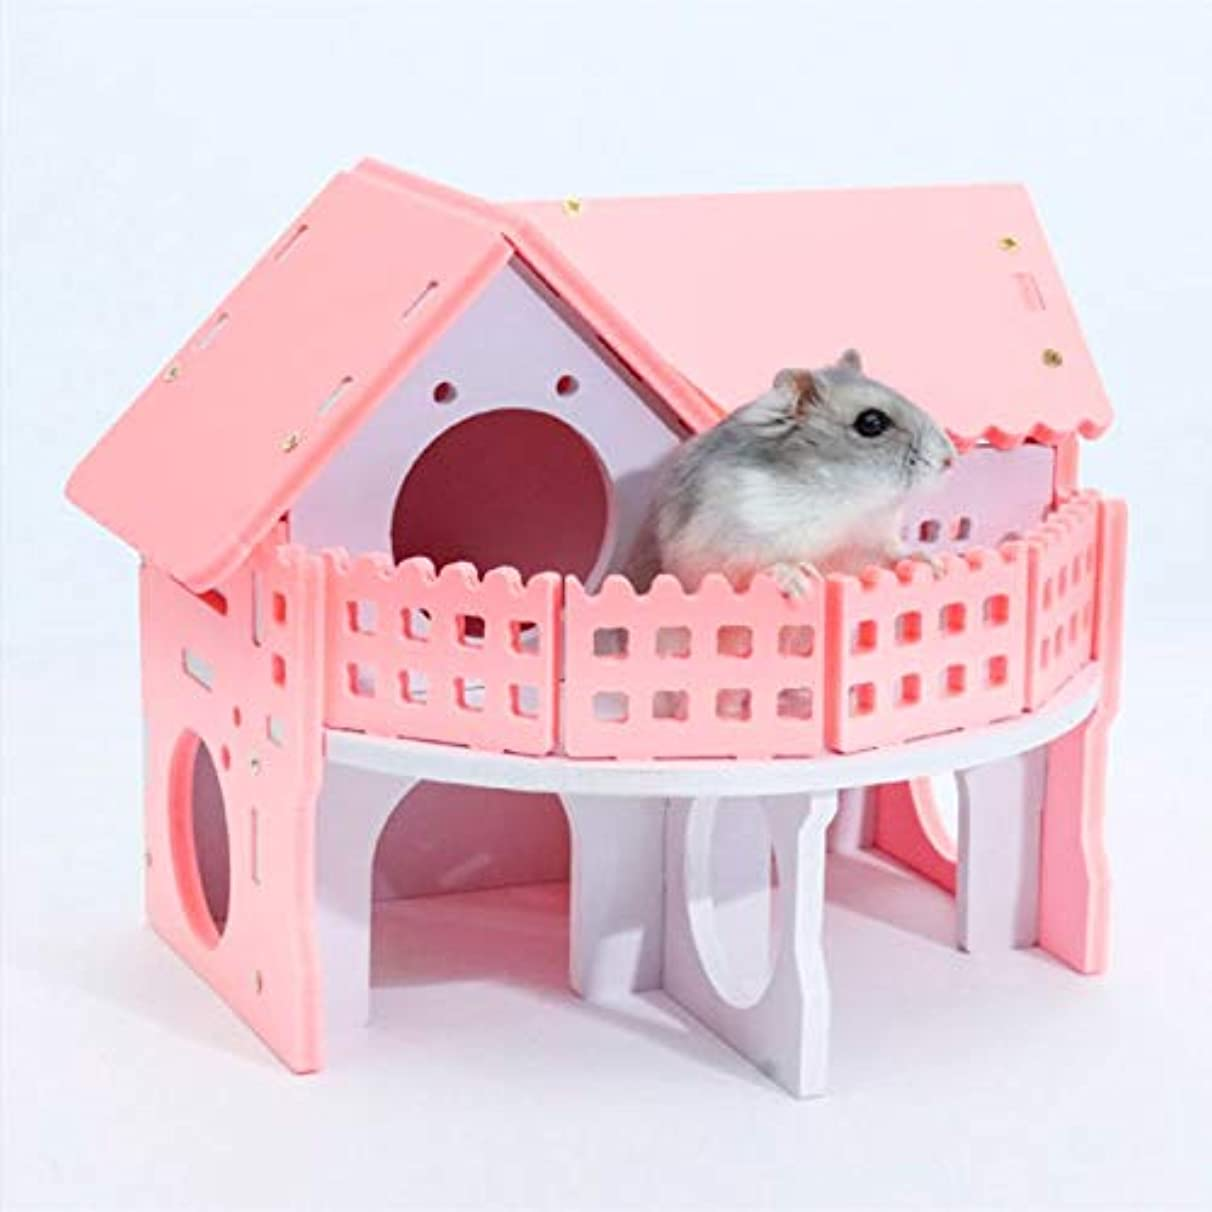 Hamster House - Pet House Villa Double Layer Balcony Nest Play Funny Hiding Place Sleeping Wooden Cage Chinchilla - Cage Stuff Floor Goldfish Chinchila Double Grey Cages Round Modern Cleaner